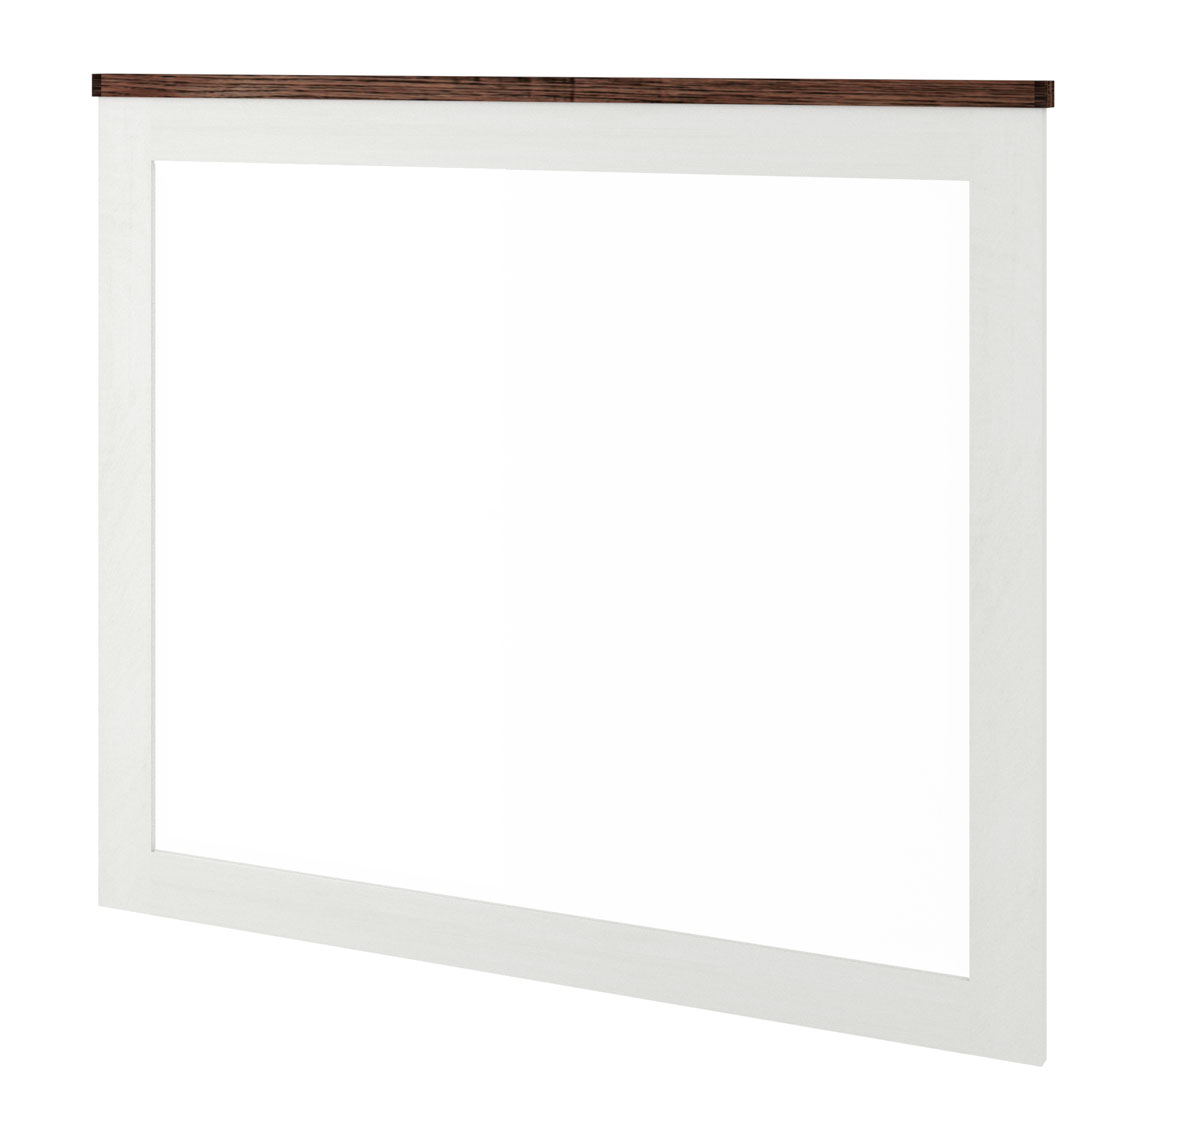 Alcan Medium Beveled Mirror